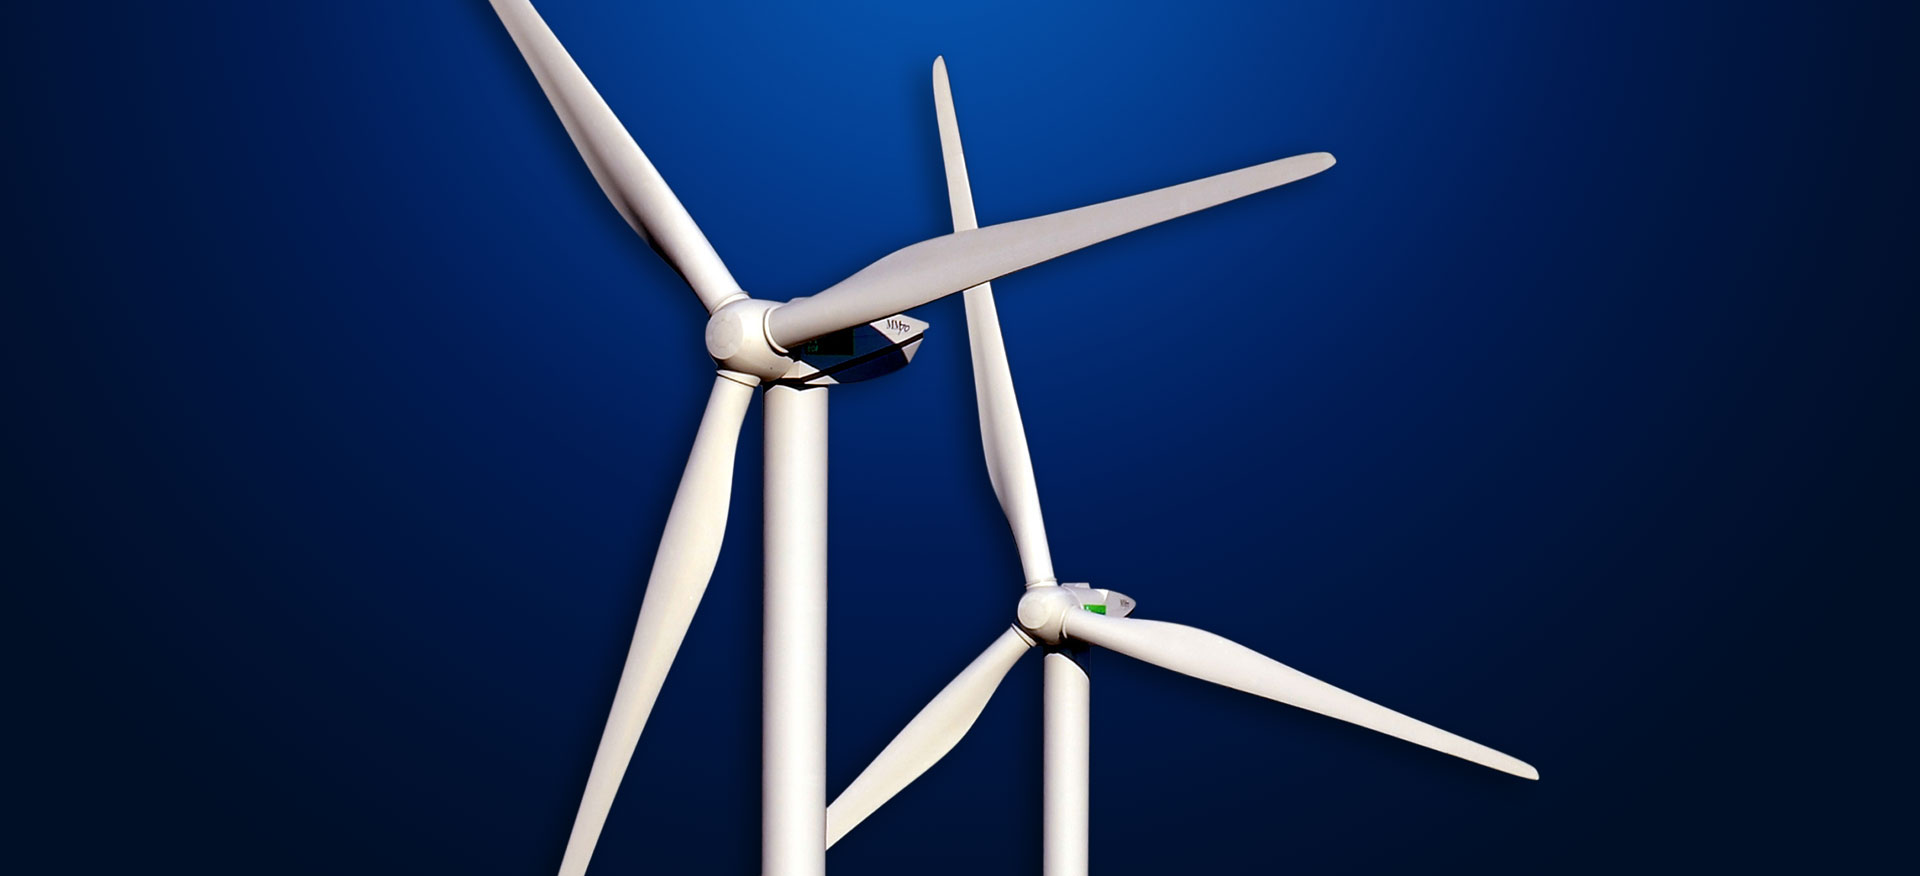 Wind Energy Wind Farm